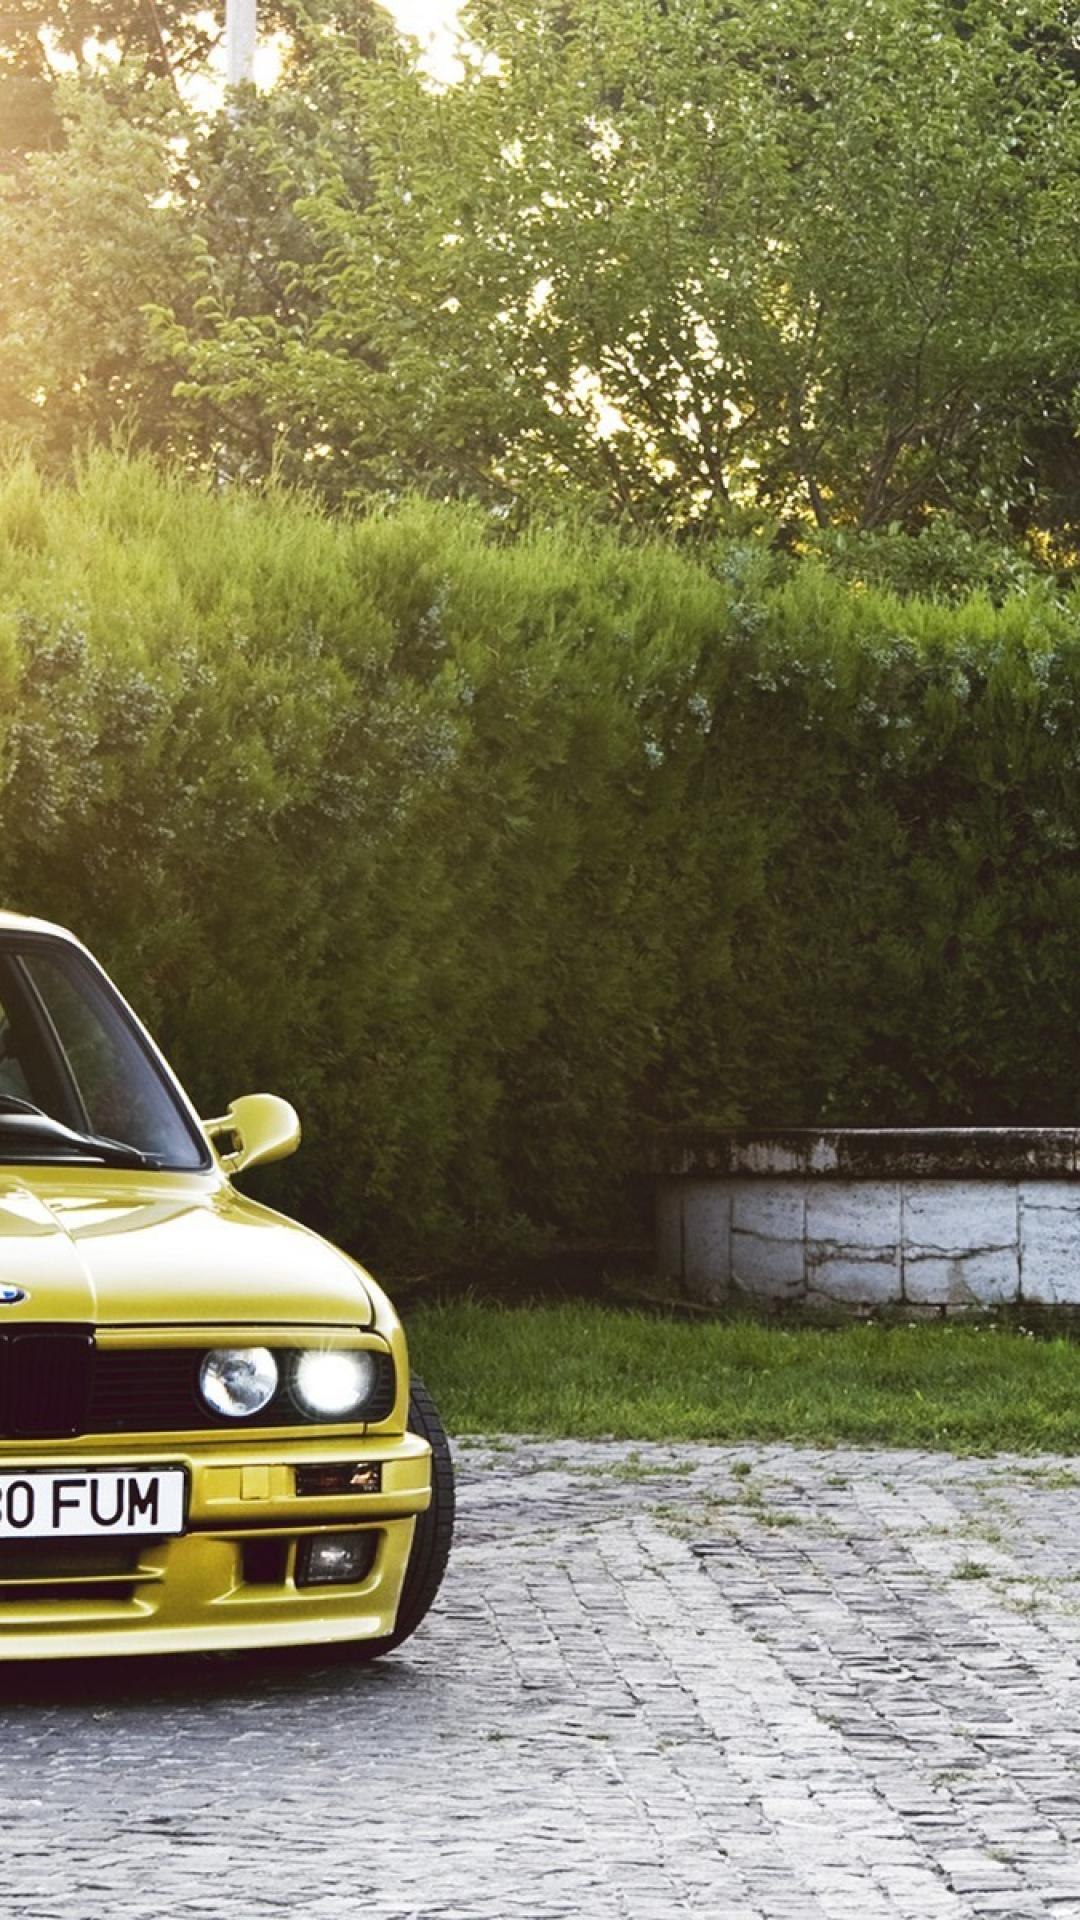 Mobile Wallpapers E30 Wallpaper Cave